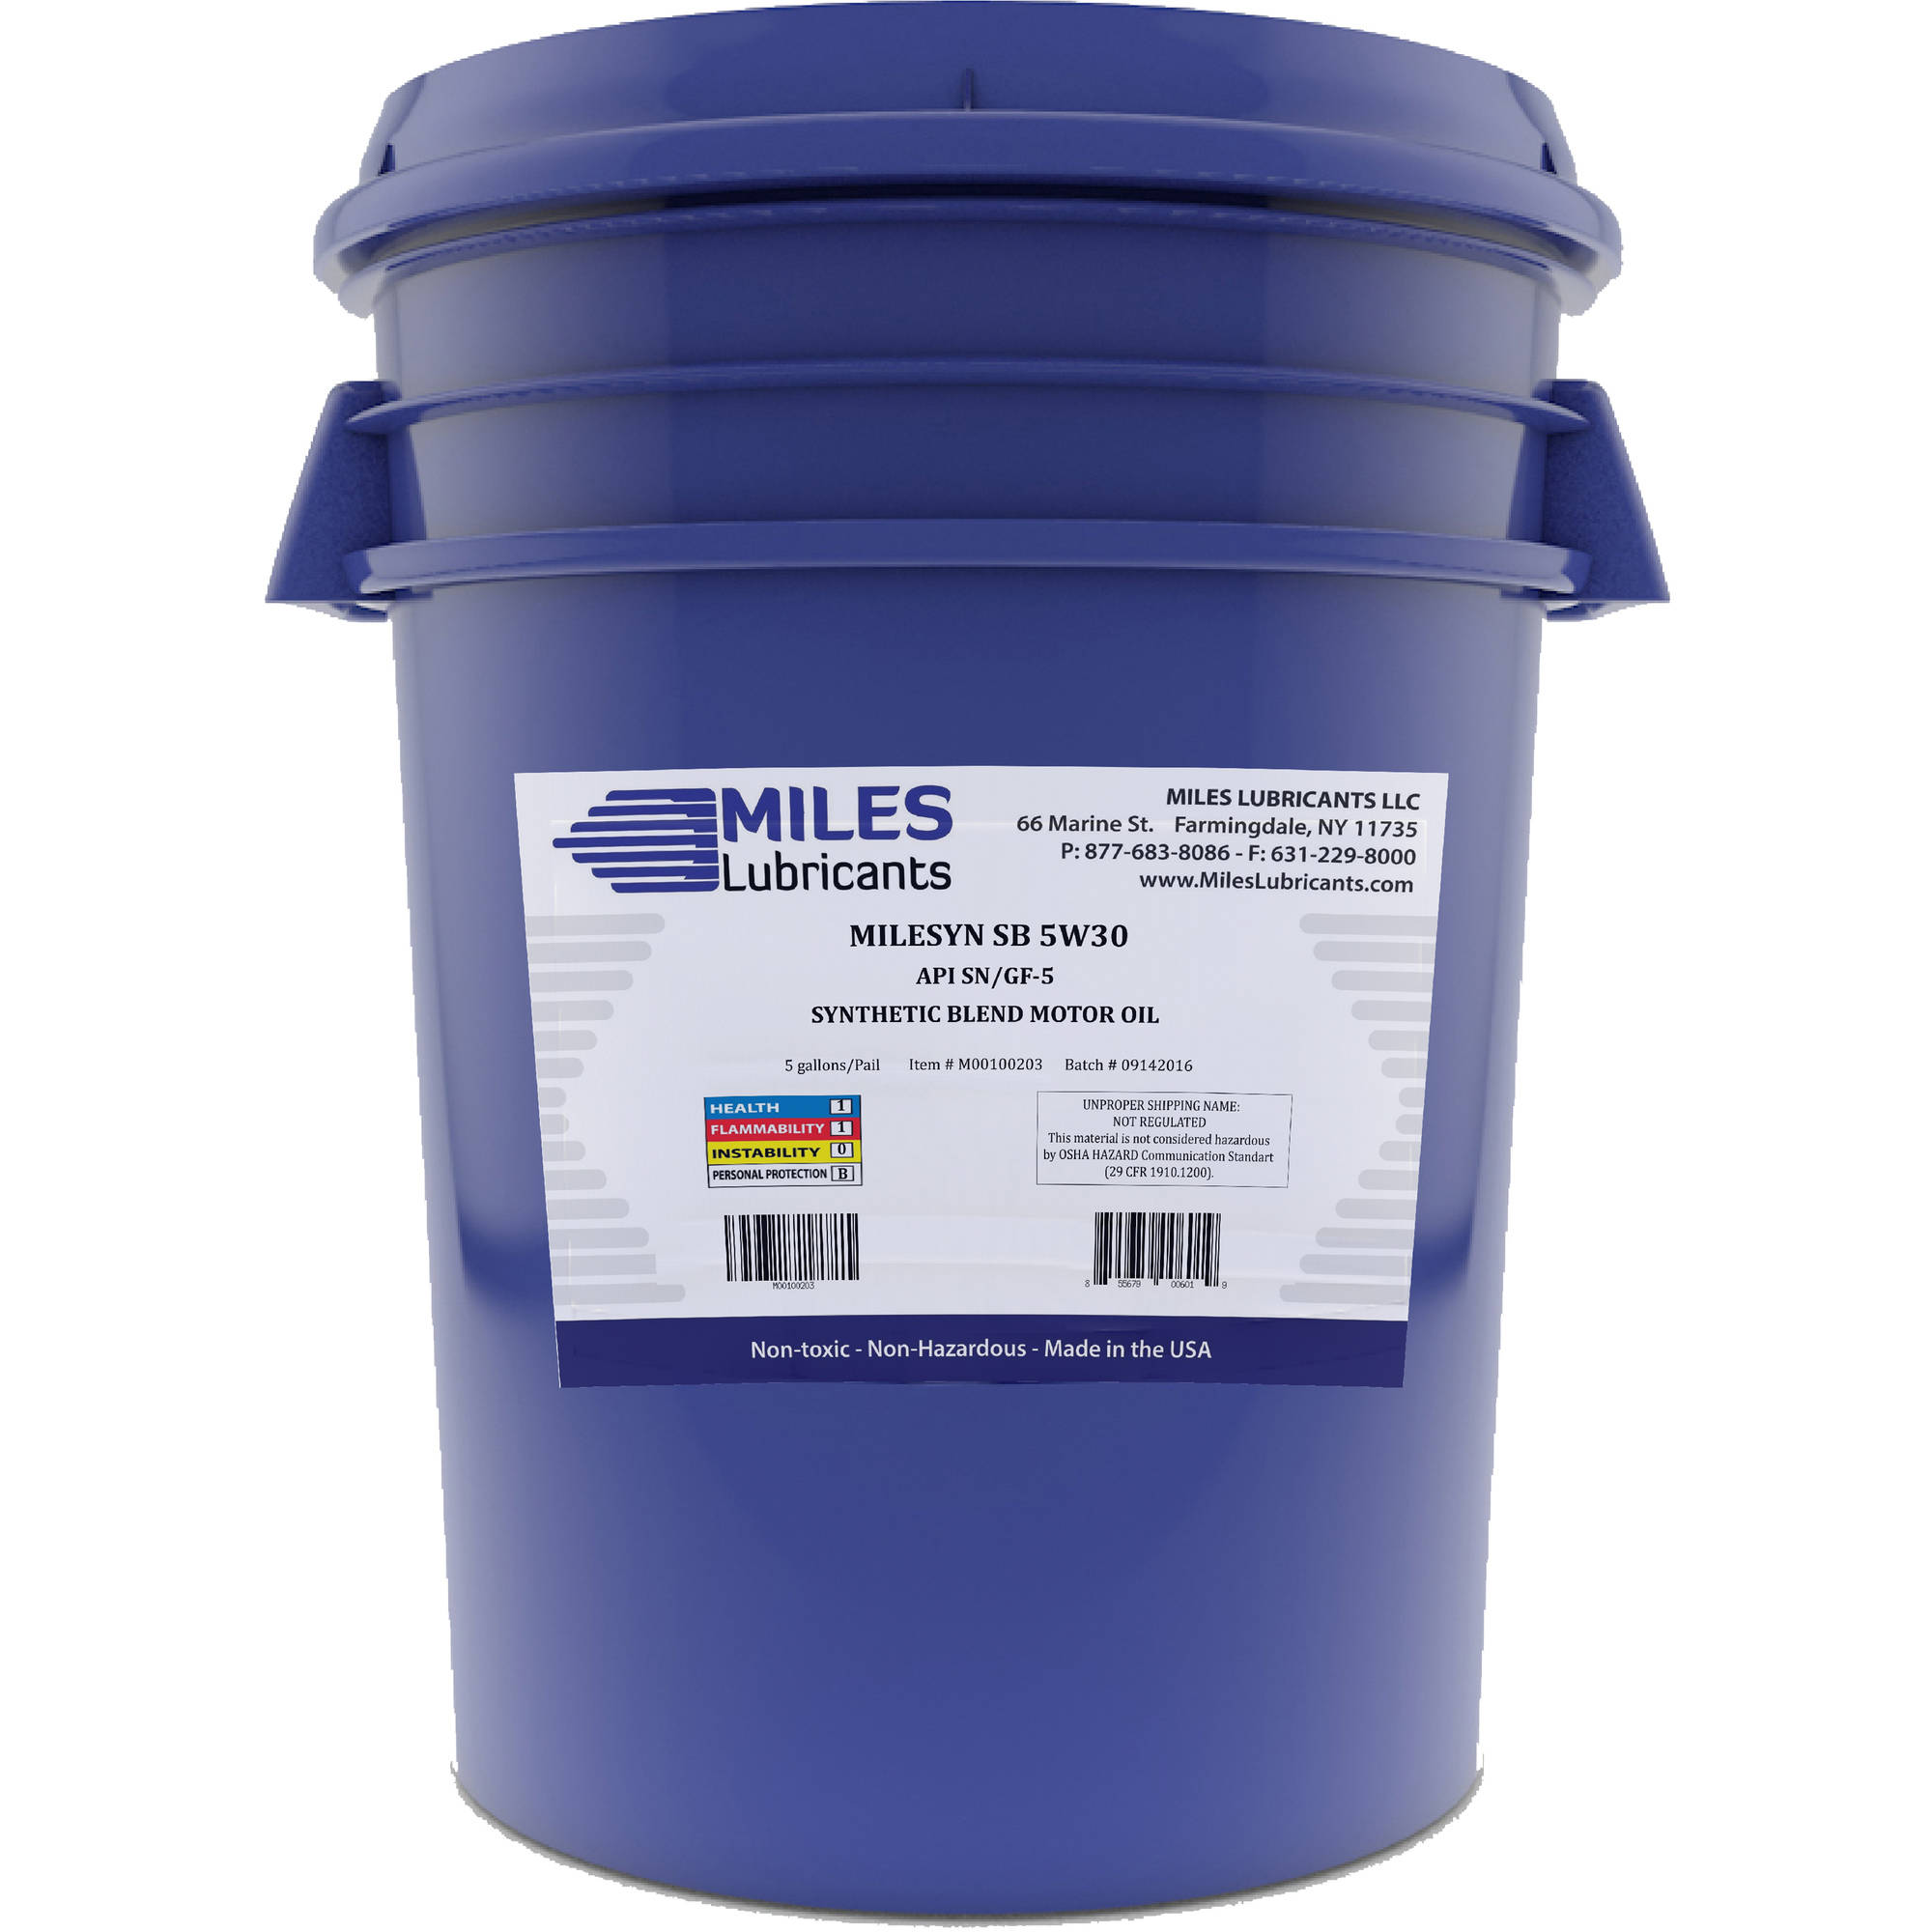 Milesyn SB 5W30 API GF-5/SN, Synthetic Blend Motor Oil, 5-Gallon Pail